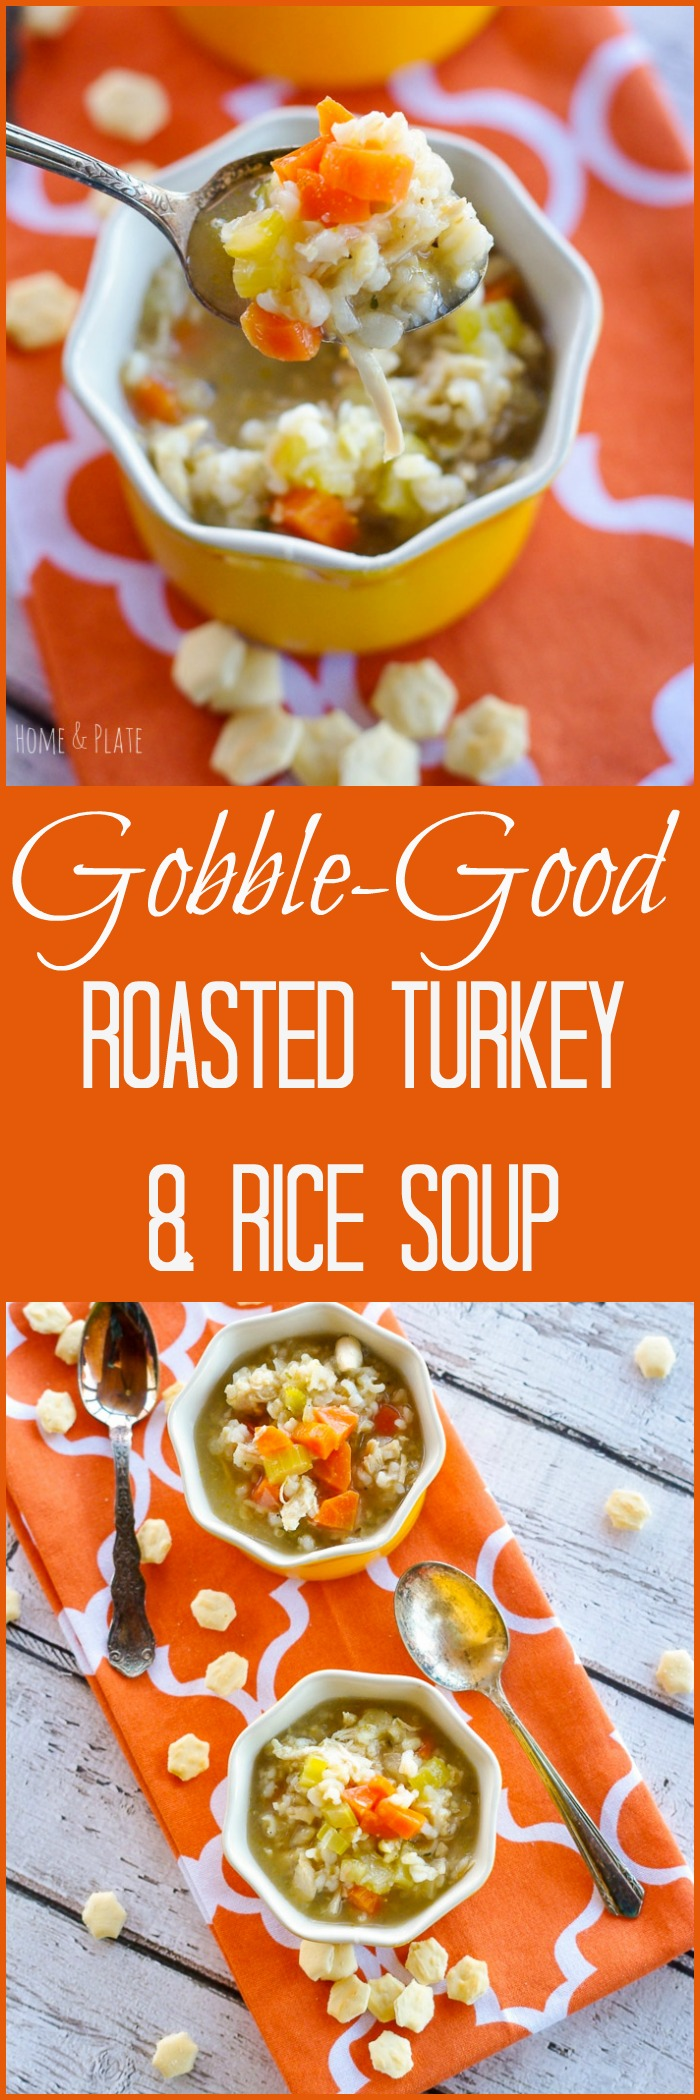 Gobble-Good Roasted Turkey & Rice Soup | www.homeandplate.com | This soup is filling and hearty and makes great use of leftover turkey in a way that's healthy and low calorie.